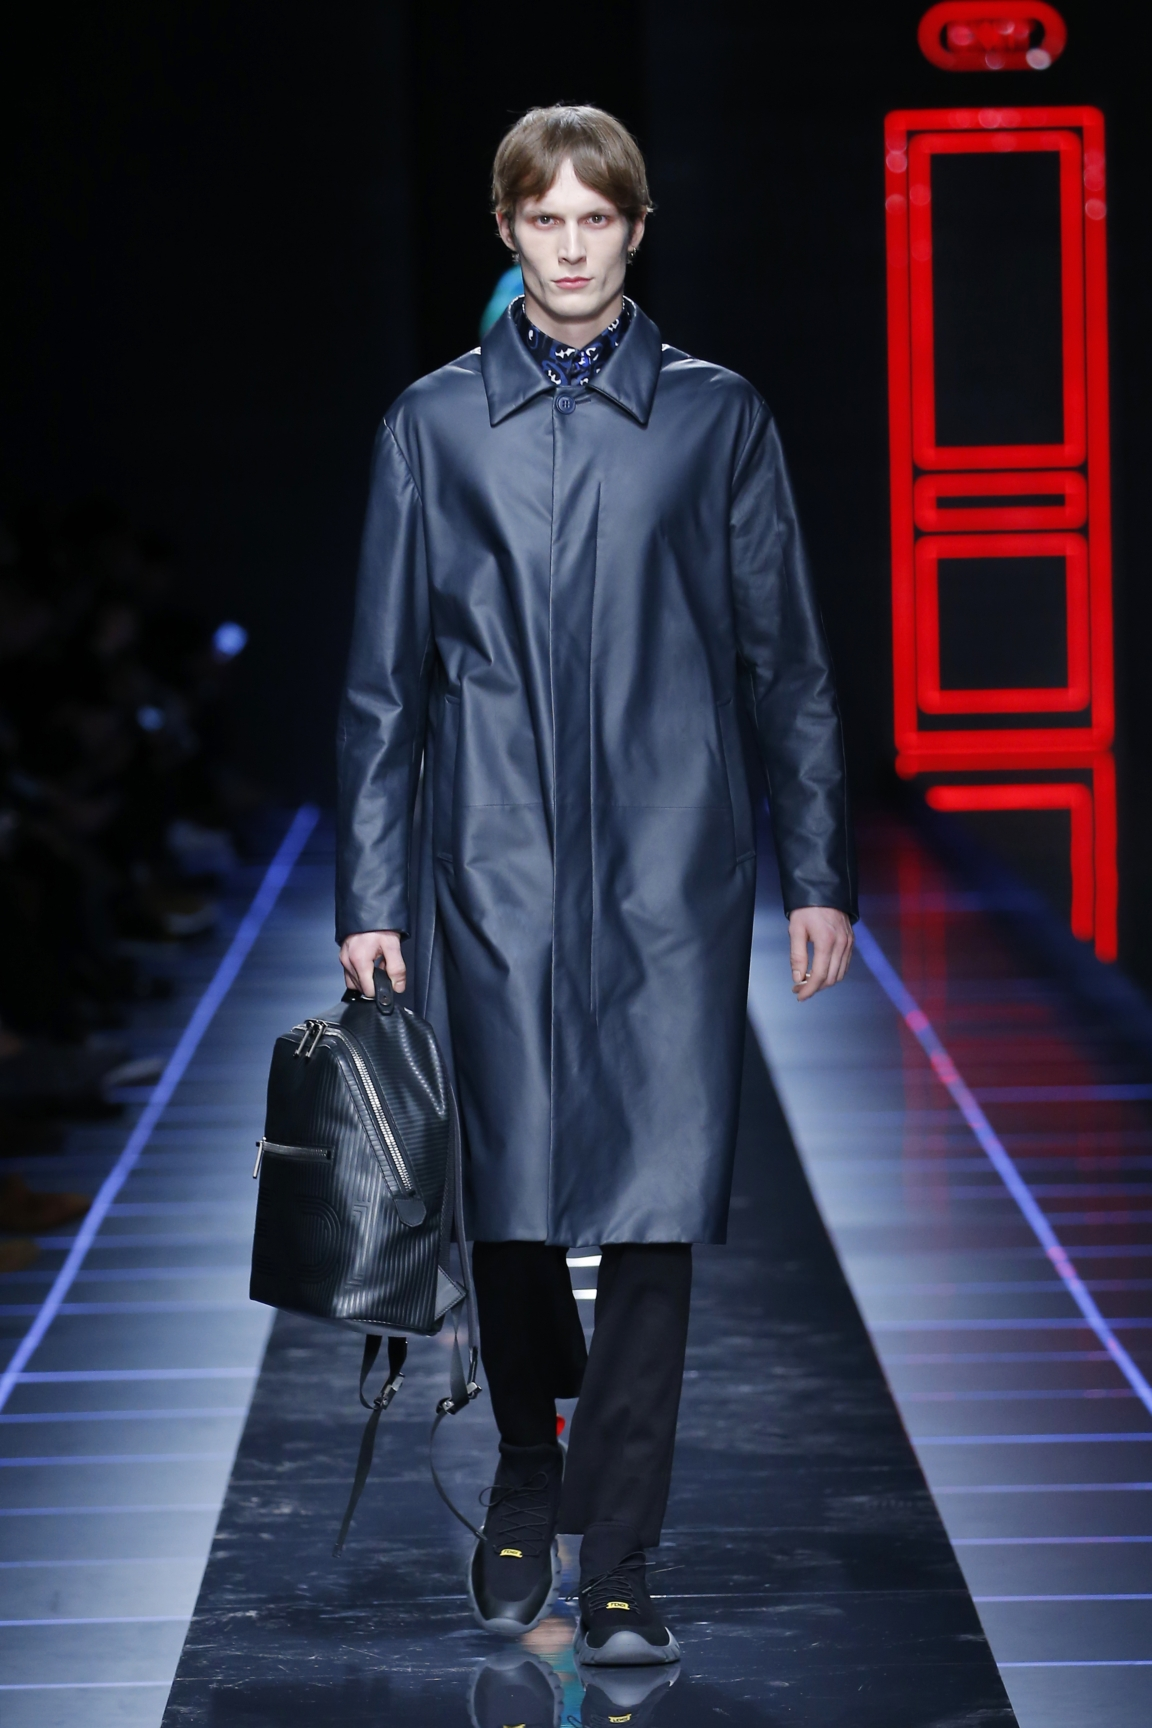 fendi-men-fw16-17-look-31